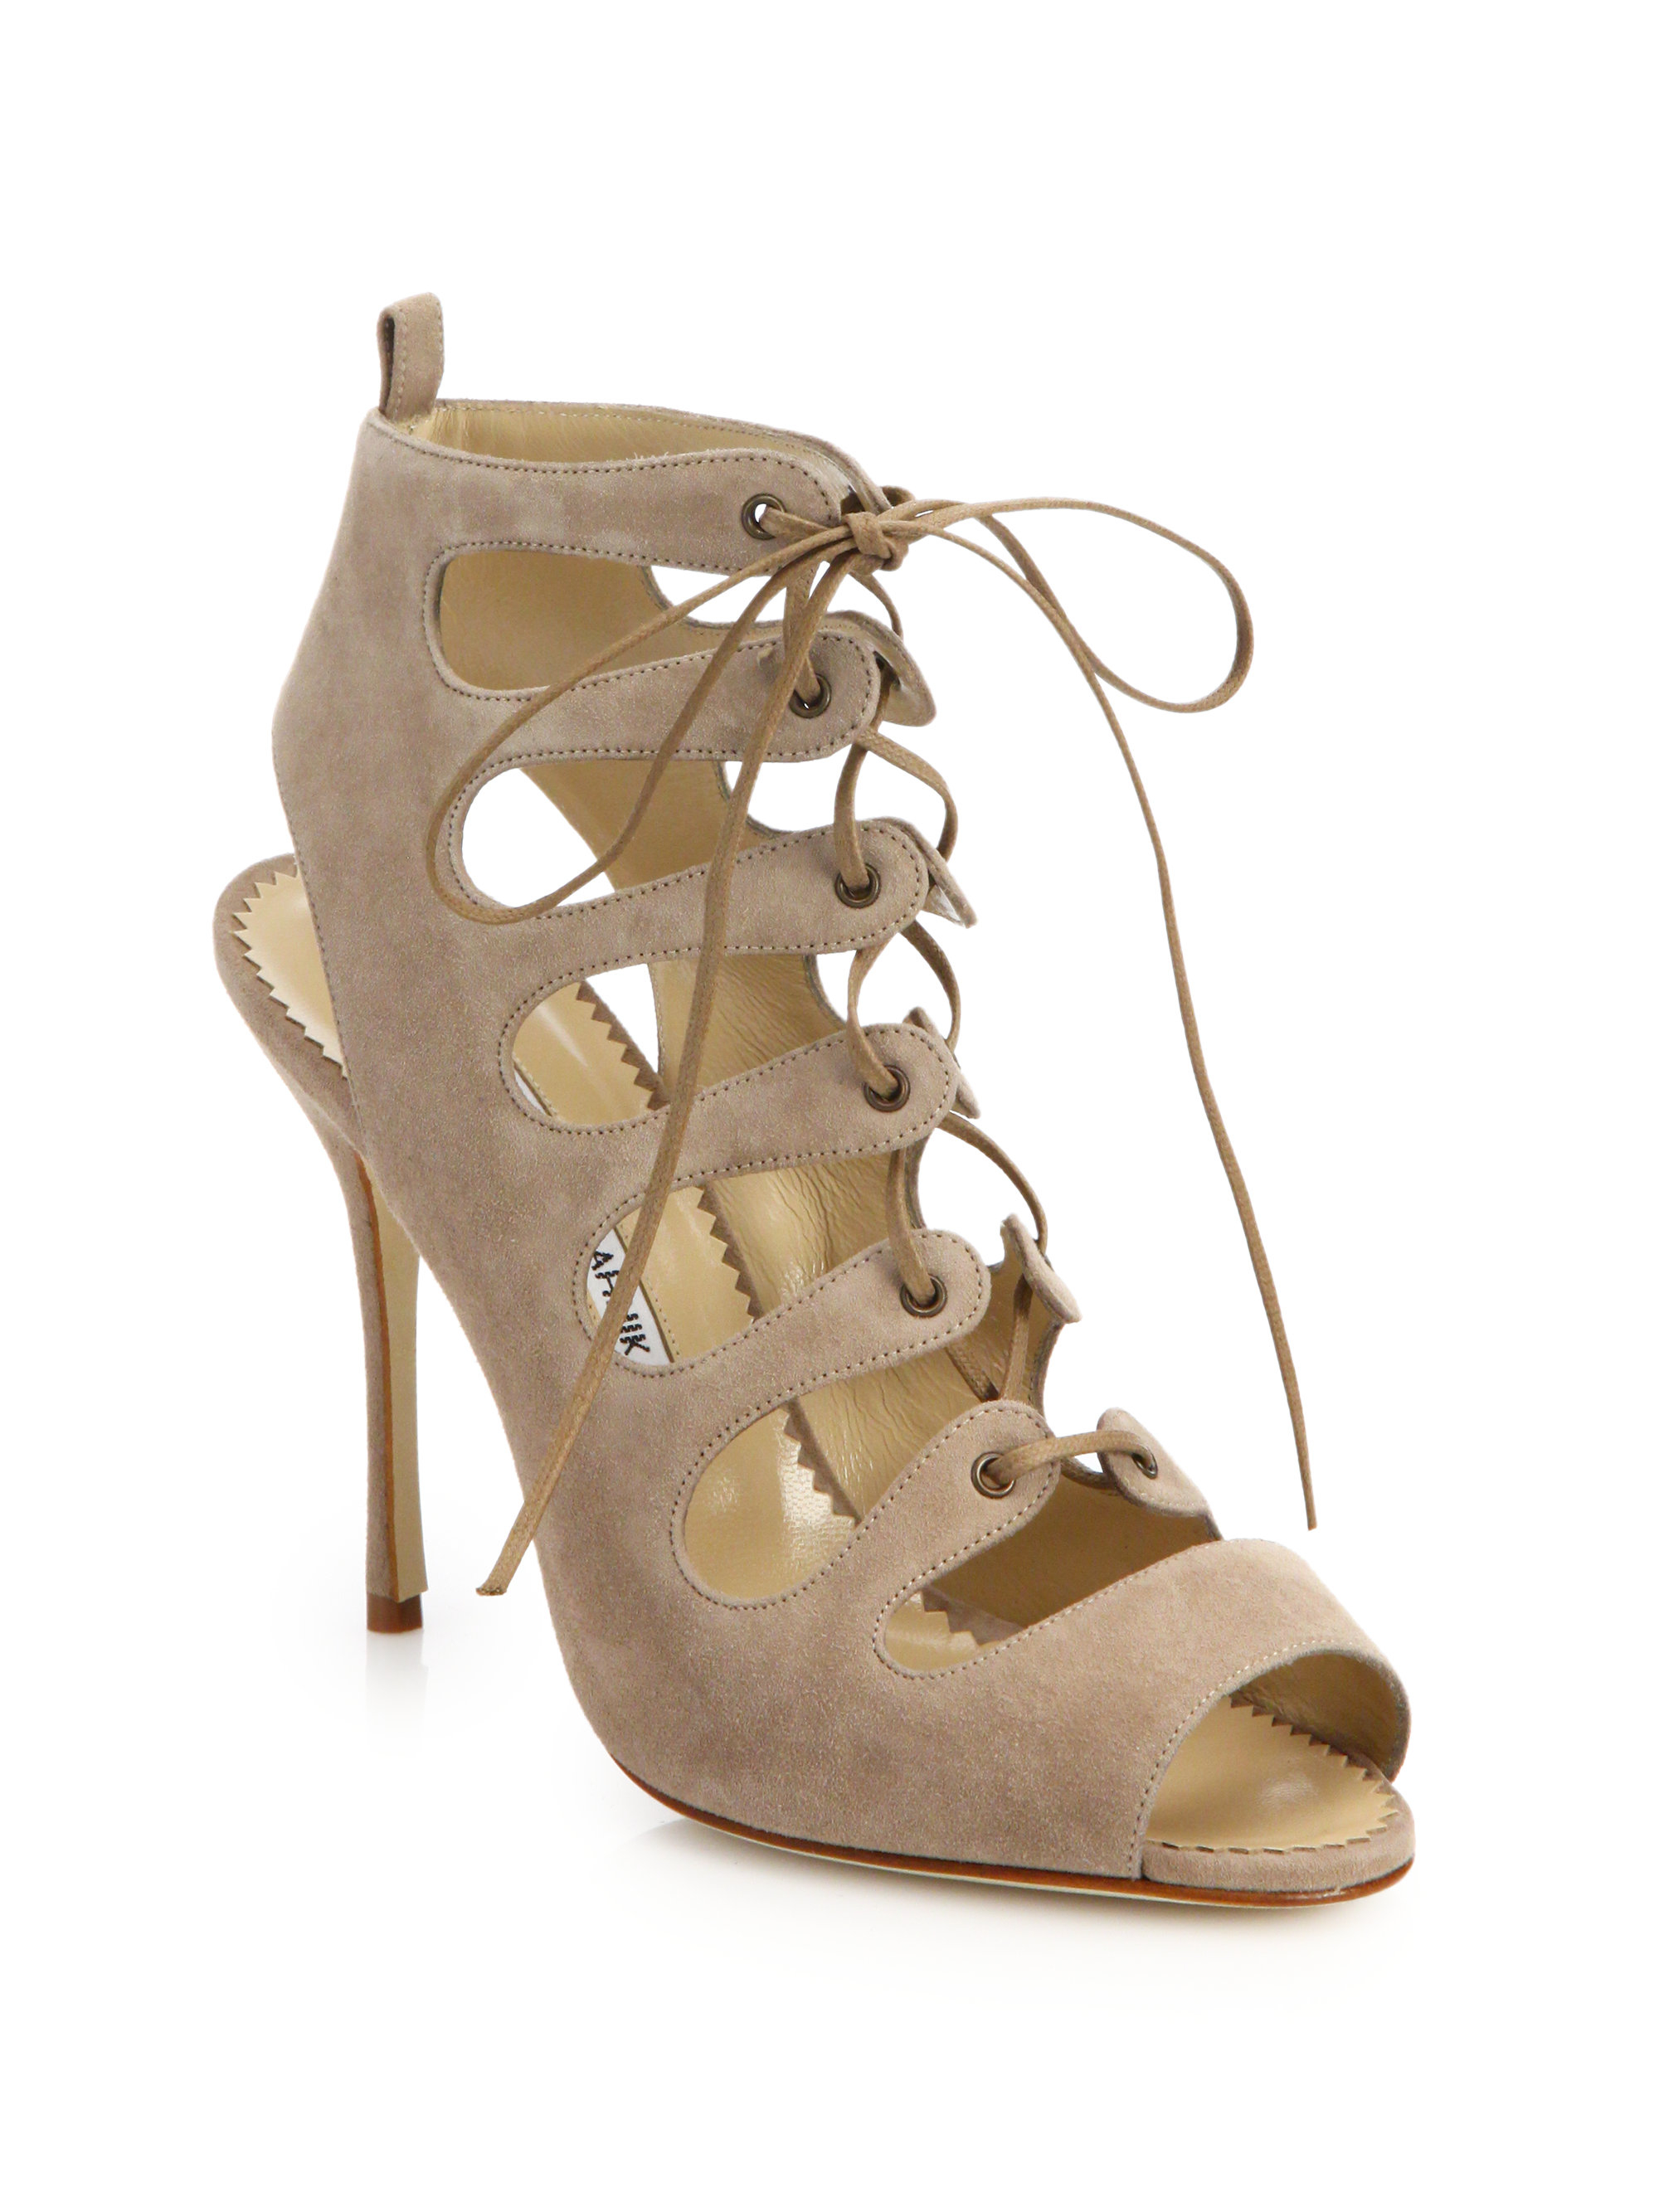 discount sast Manolo Blahnik Cutout Lace-Up Sandals new styles cheap pre order v6Wk5Z